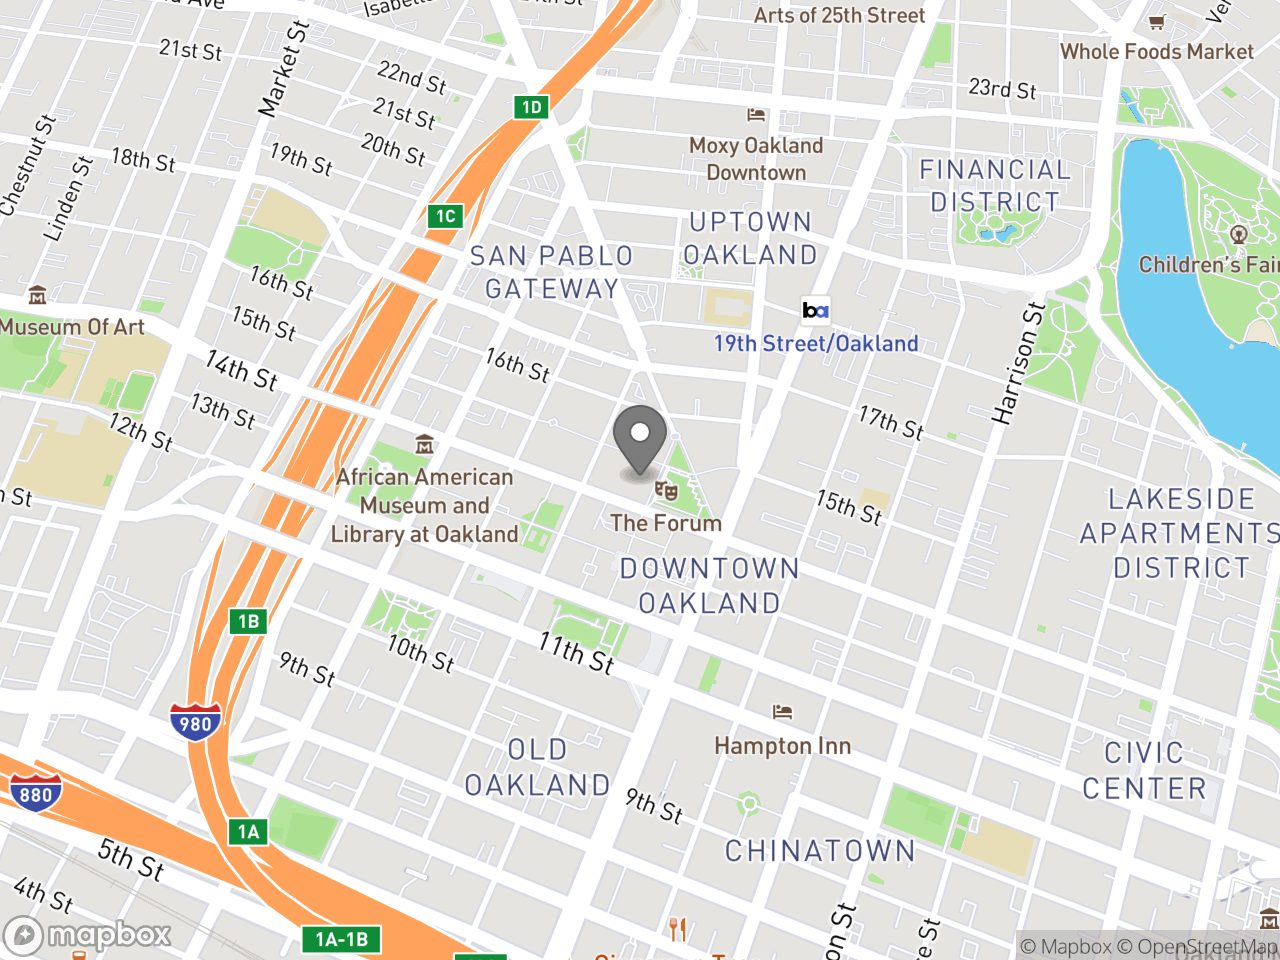 Map image for Bicyclist and Pedestrian Advisory Commission (BPAC) Meeting, May 17, 2018, located at 1 Frank H Ogawa Plaza in Oakland, CA 94612